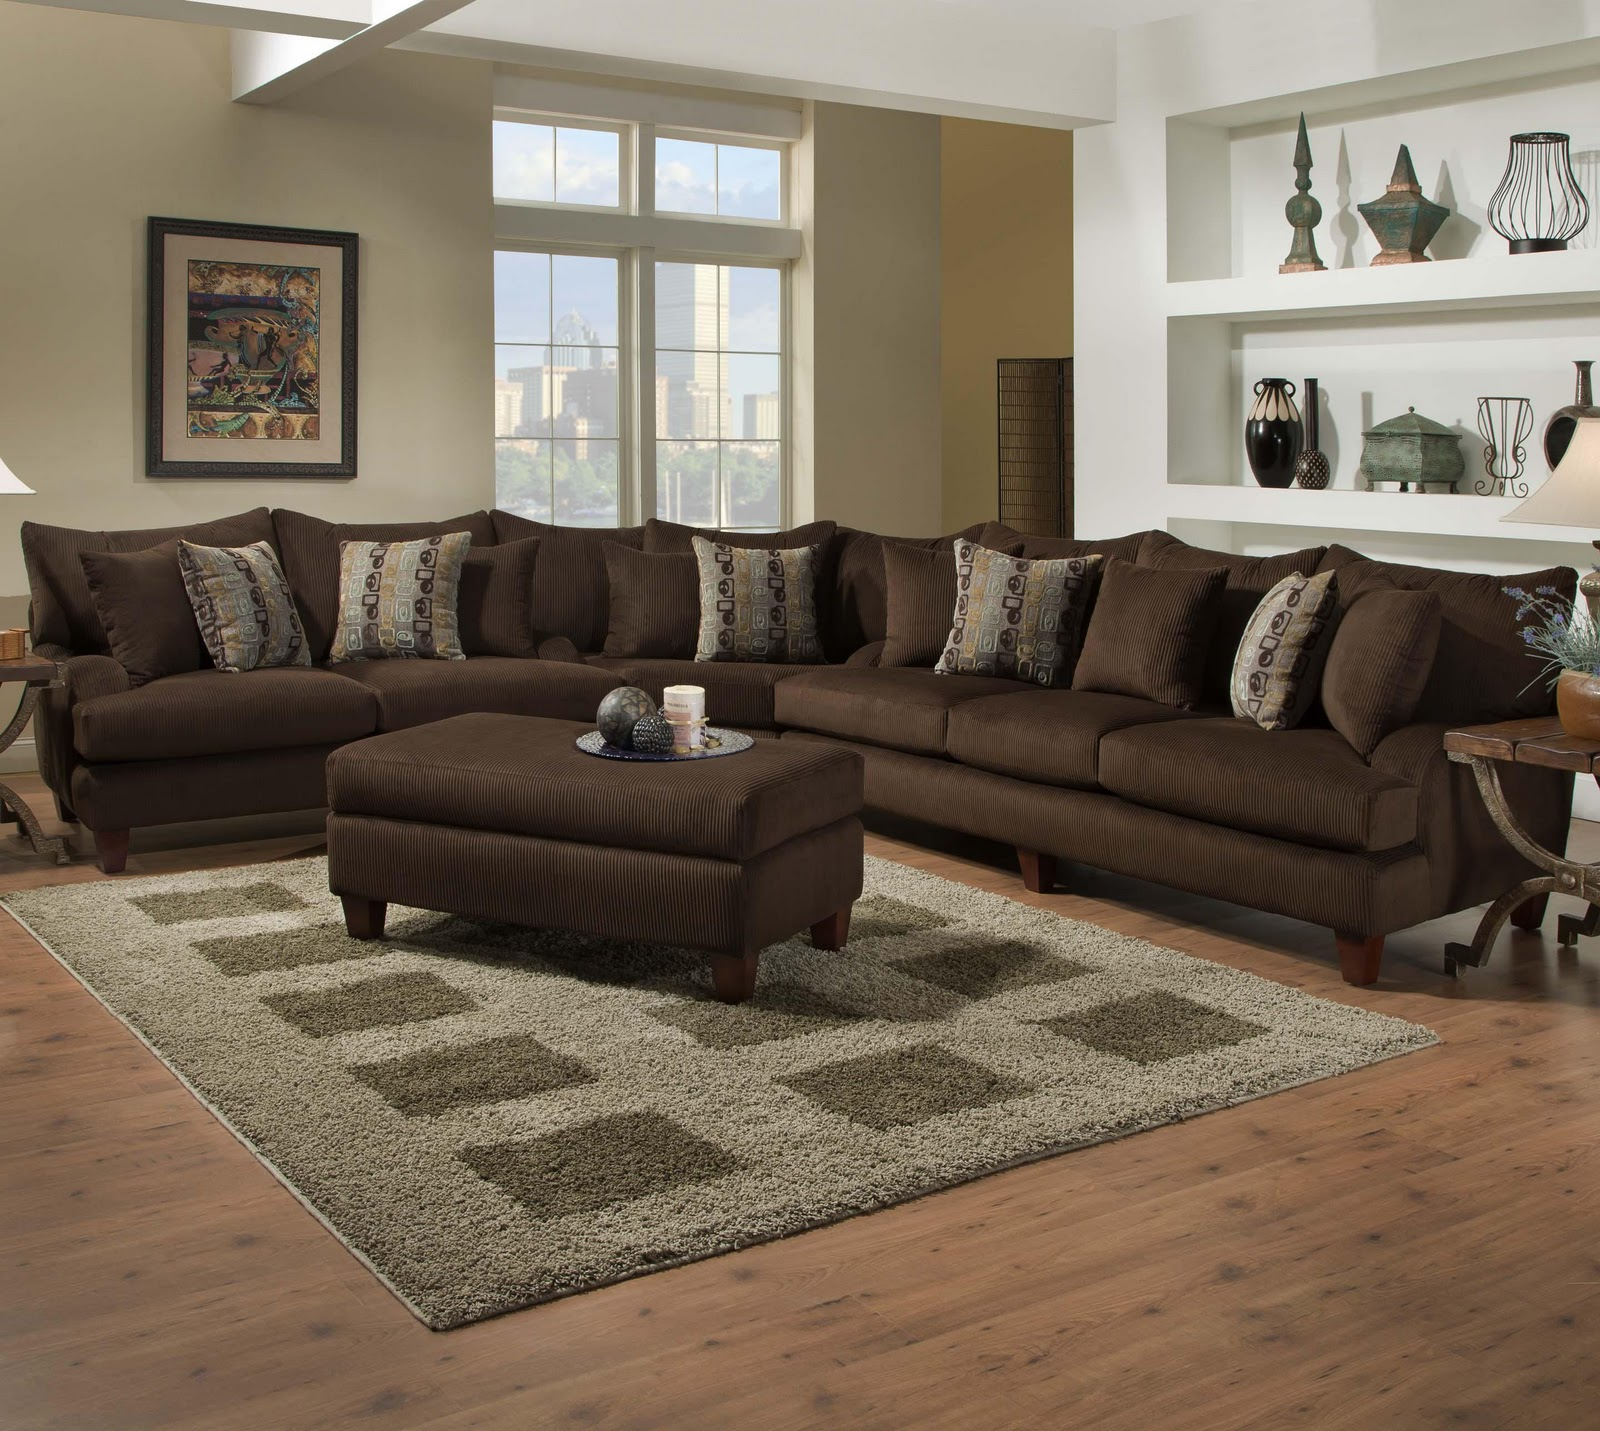 This modern collection of upholstery features a sofa loveseat chair not shown ottoman and sectional wrapped in a rich trackstar chocolate fabric